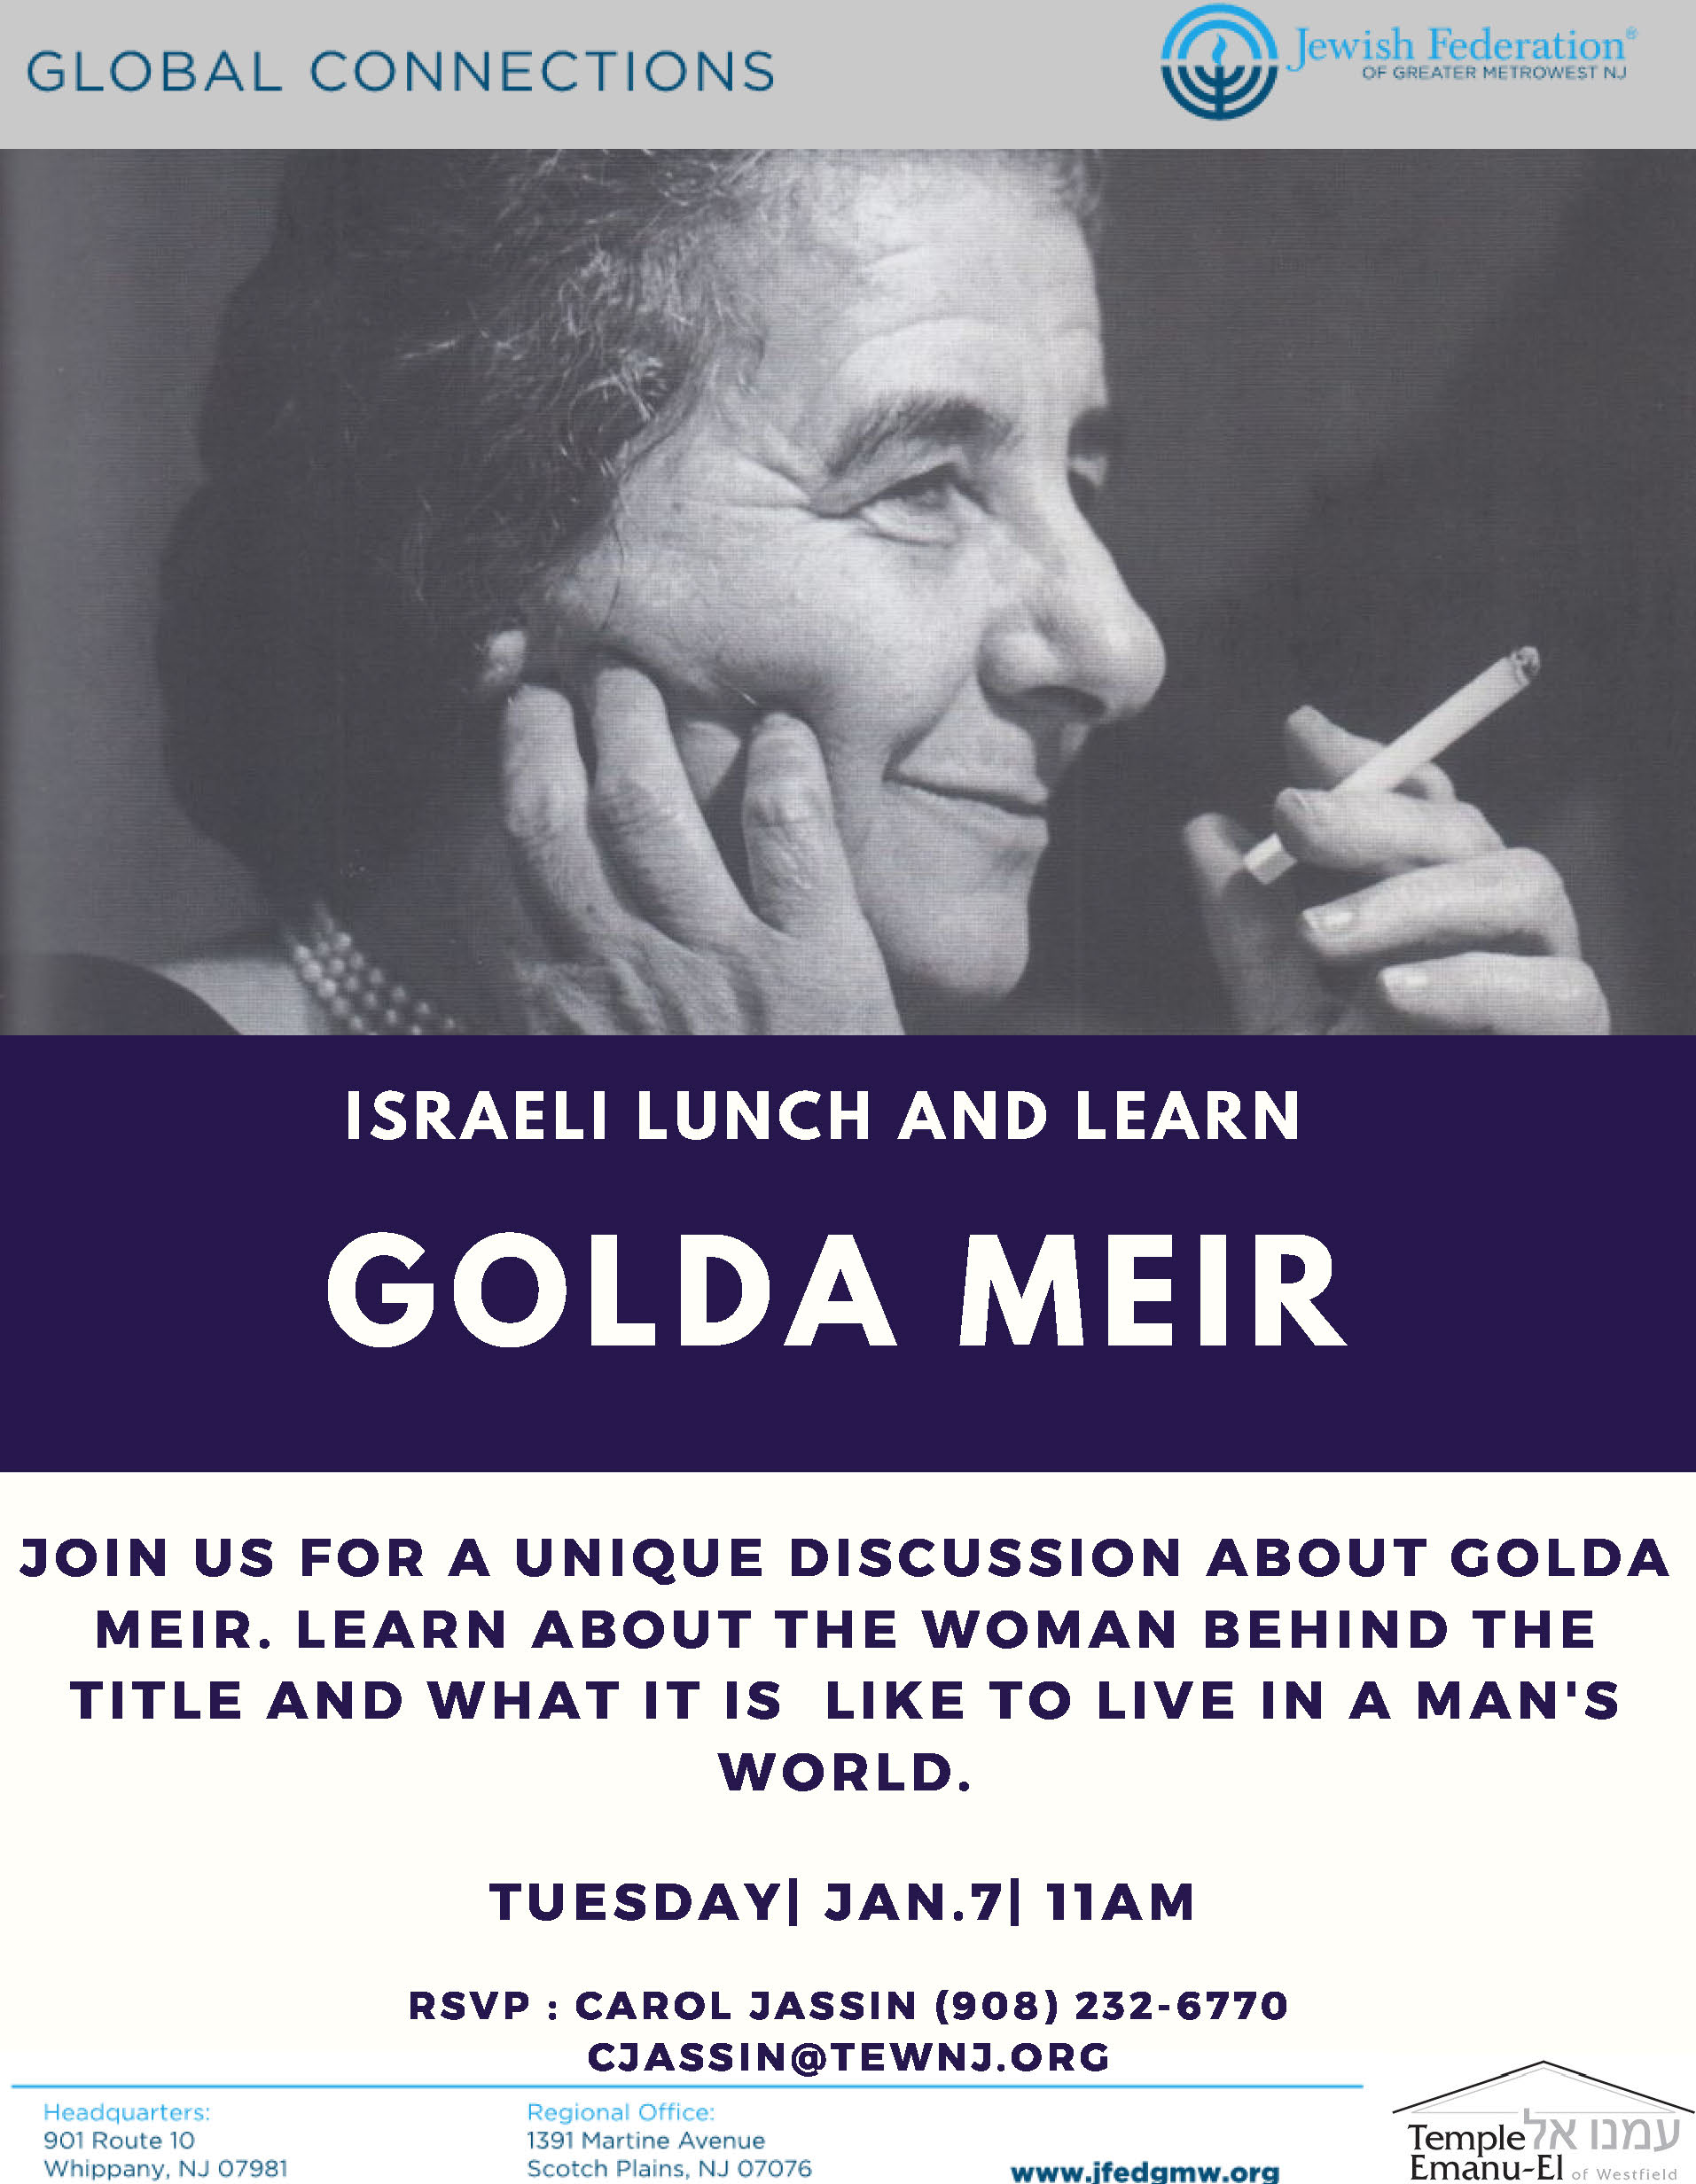 Israel Lunch and Learn - Golda